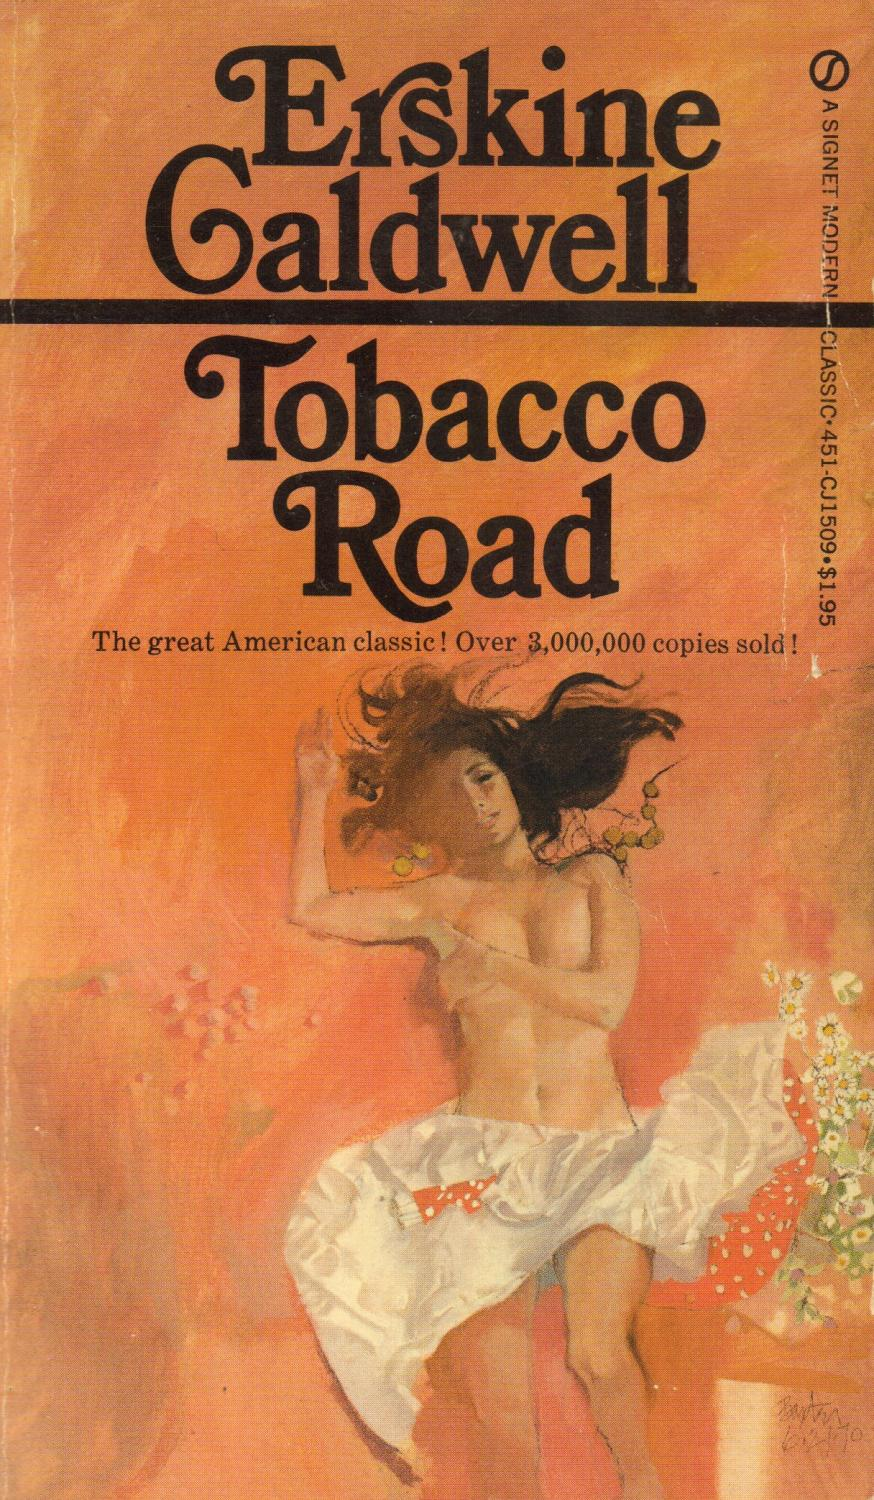 an analysis of tobacco road by erskine caldwell